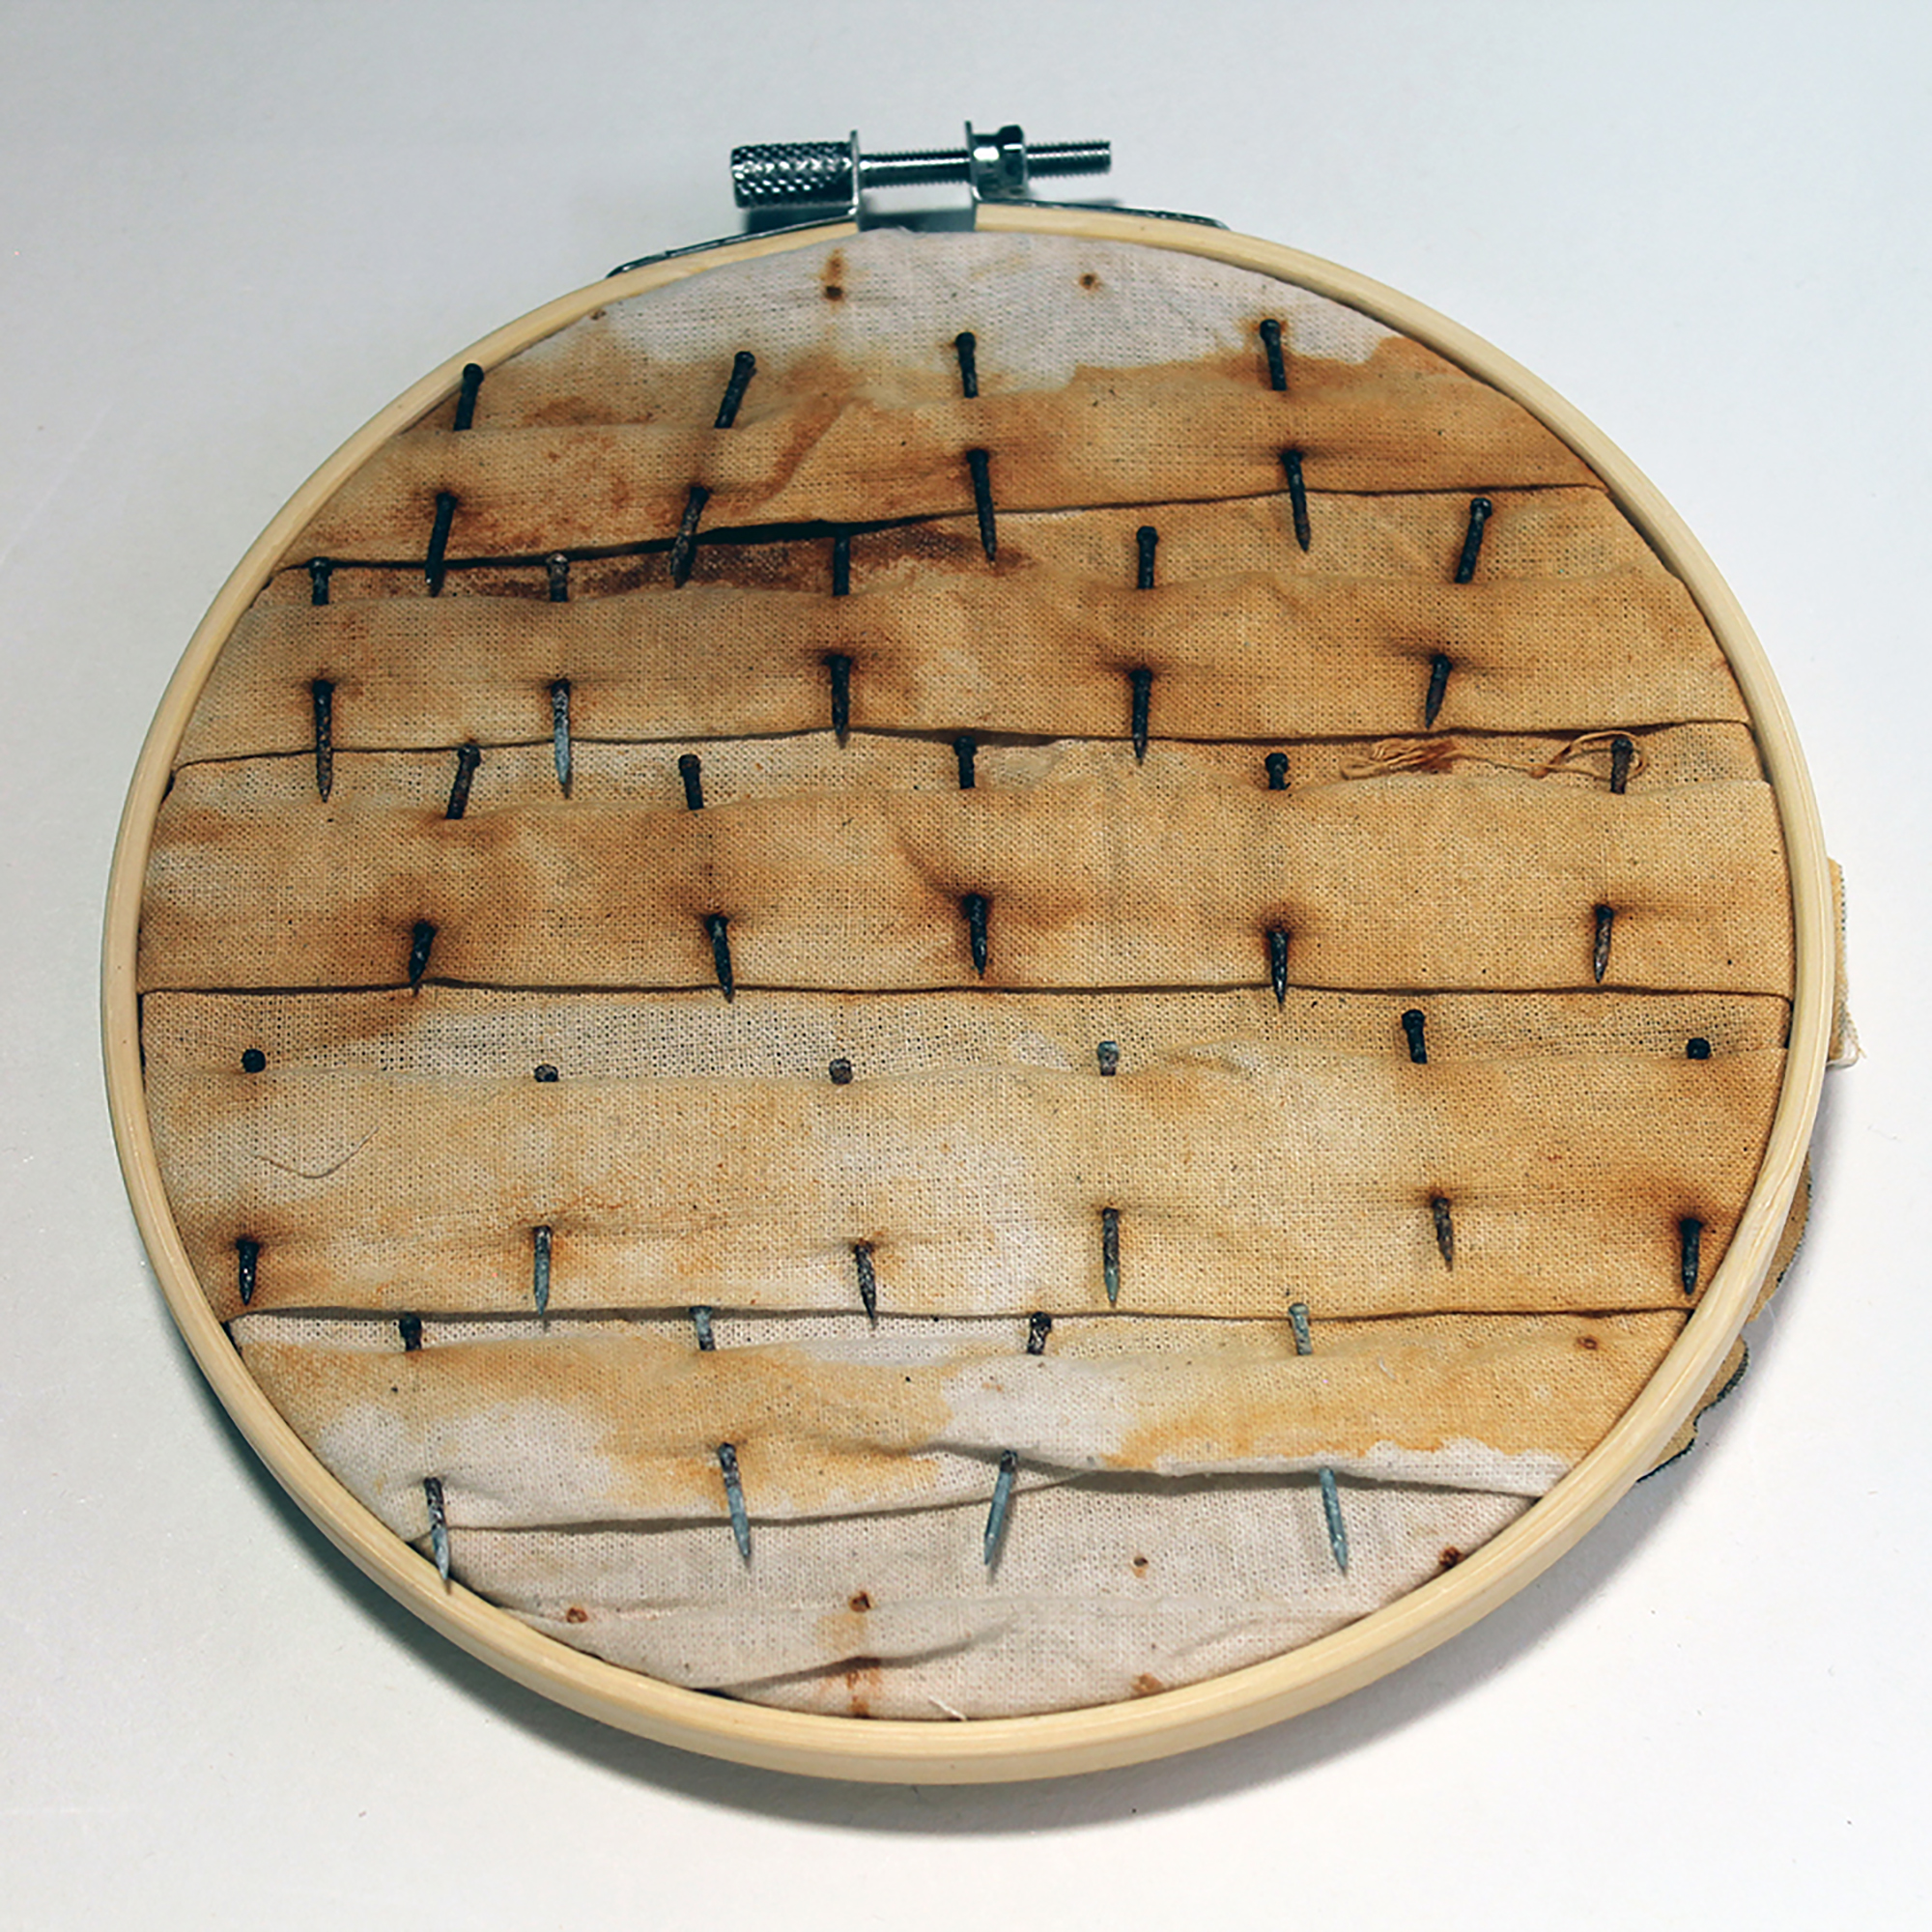 Daniel Collings - #stitchyourstory